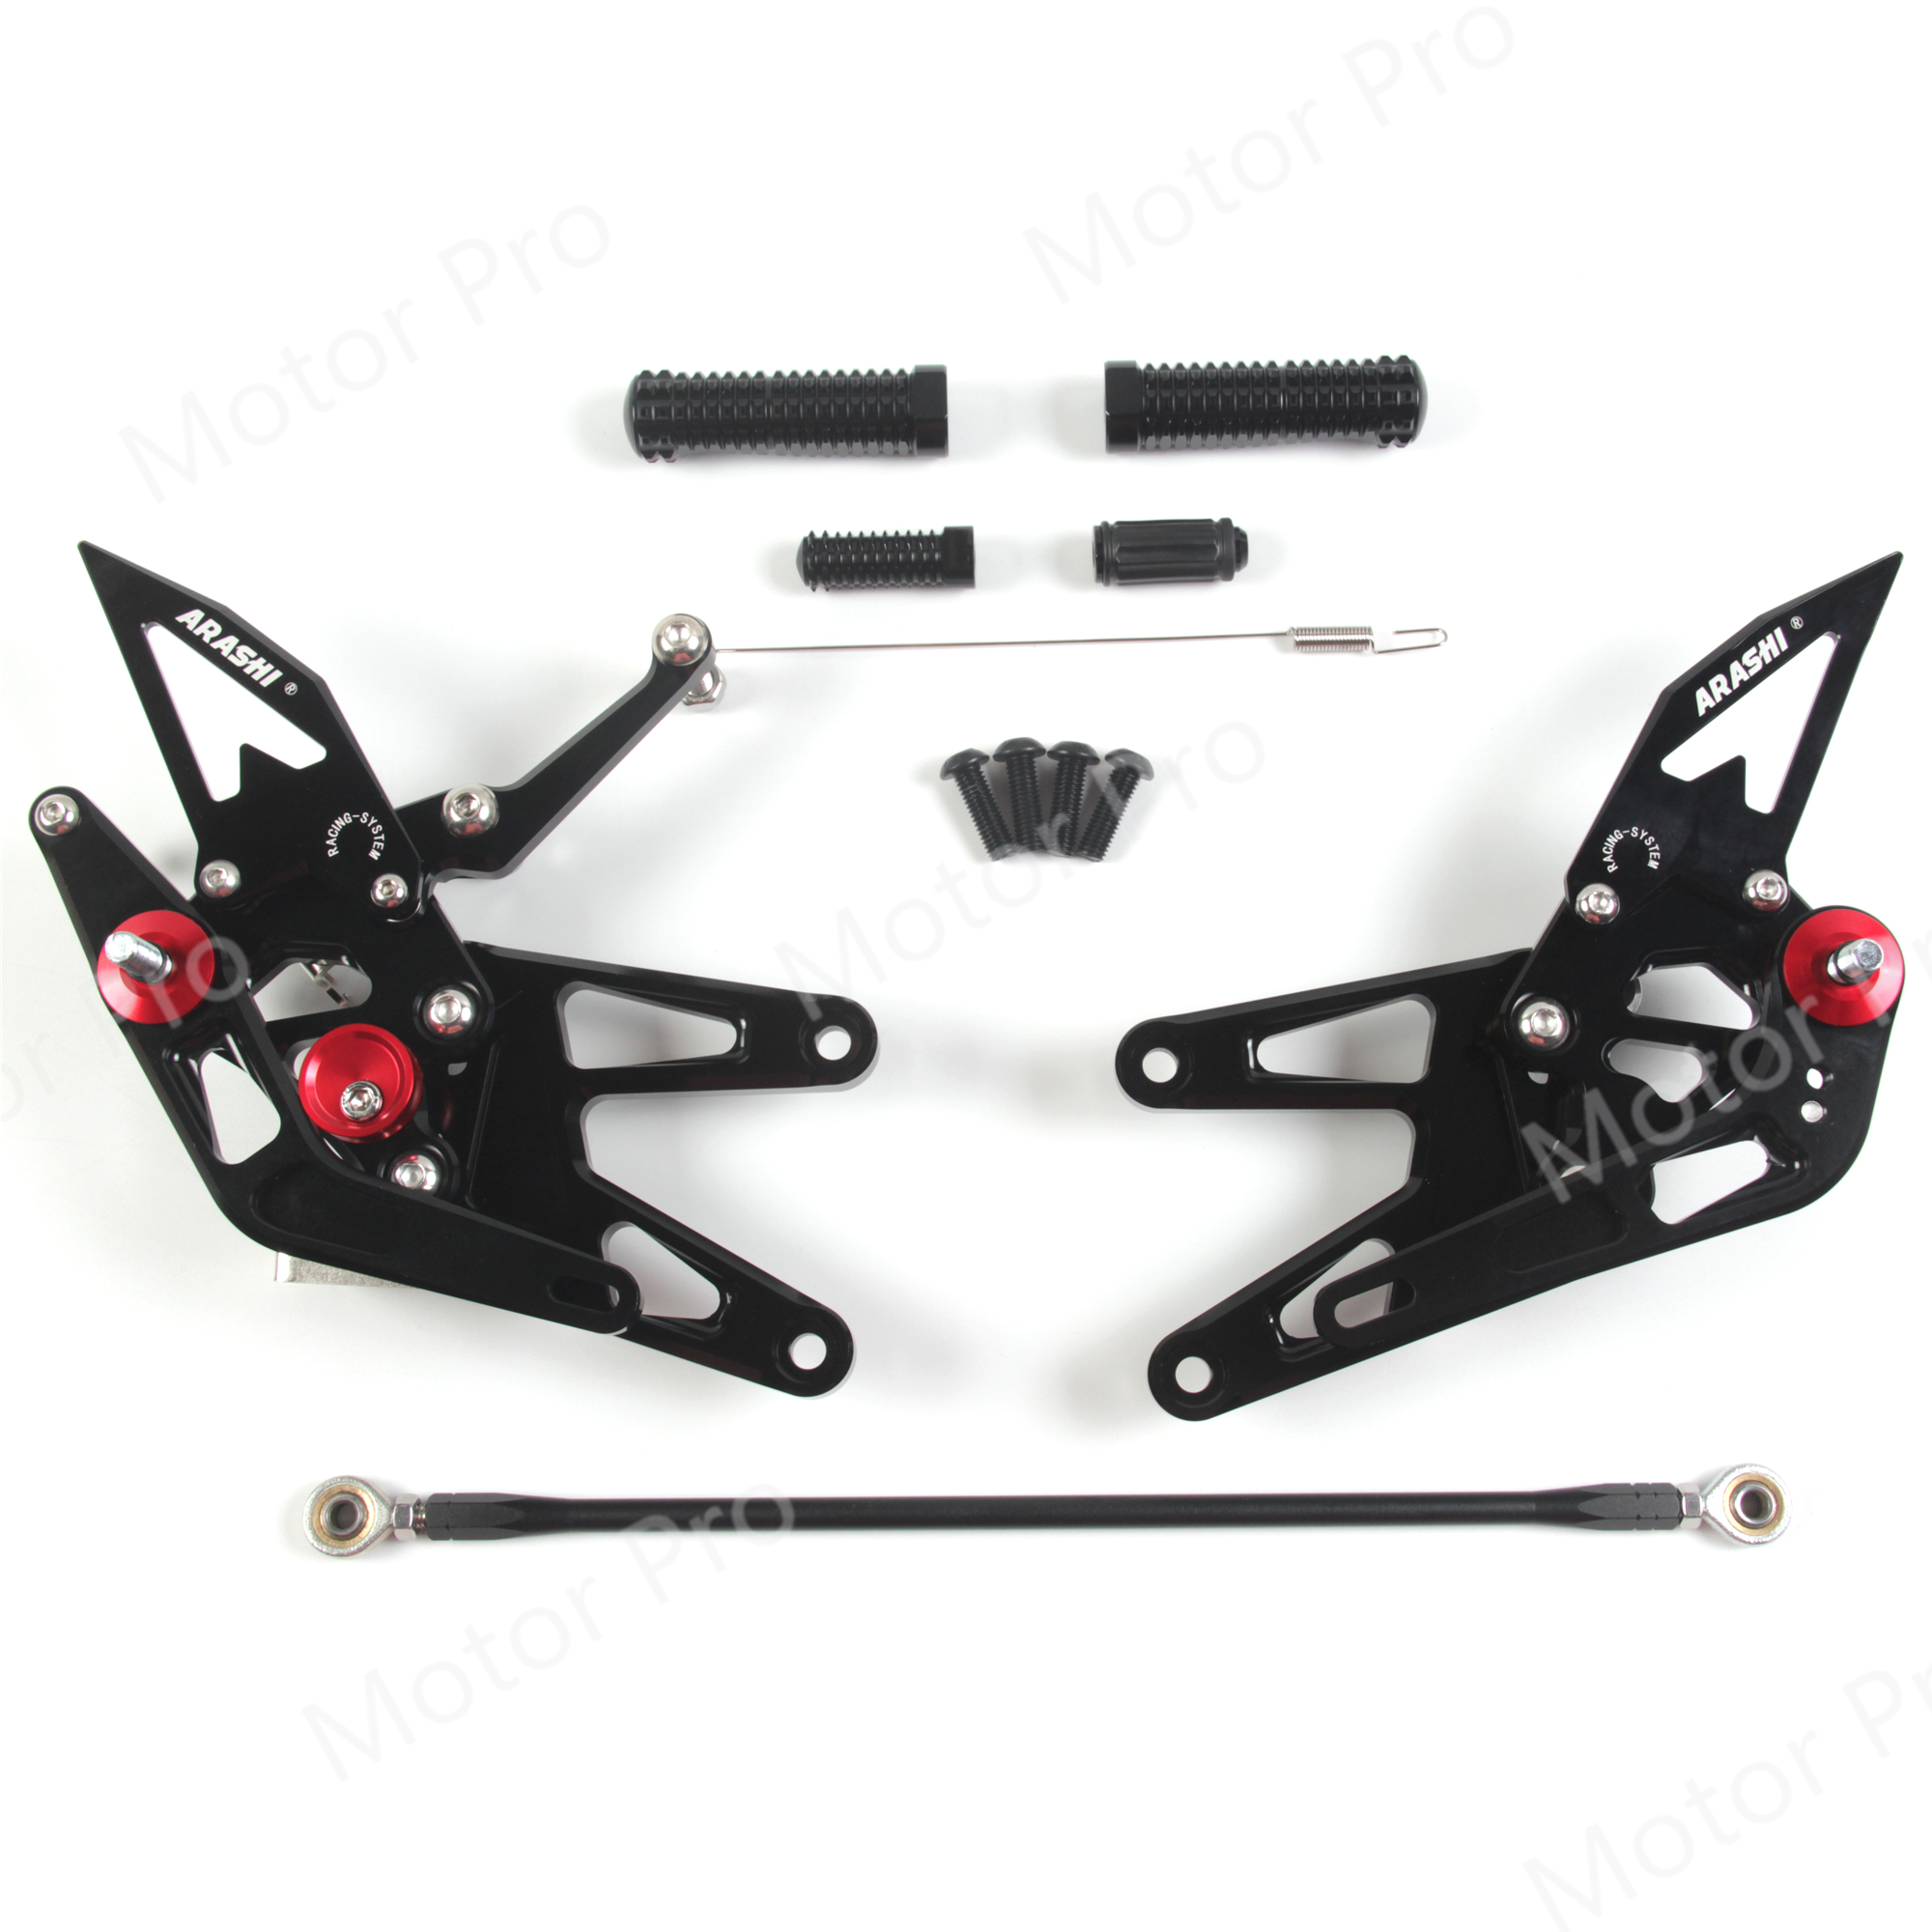 Adjustable Footrests For Yamaha YZF R6 2003 2004 2005 Motorcycle Accessories Foot Rests Pegs Rearset Rear